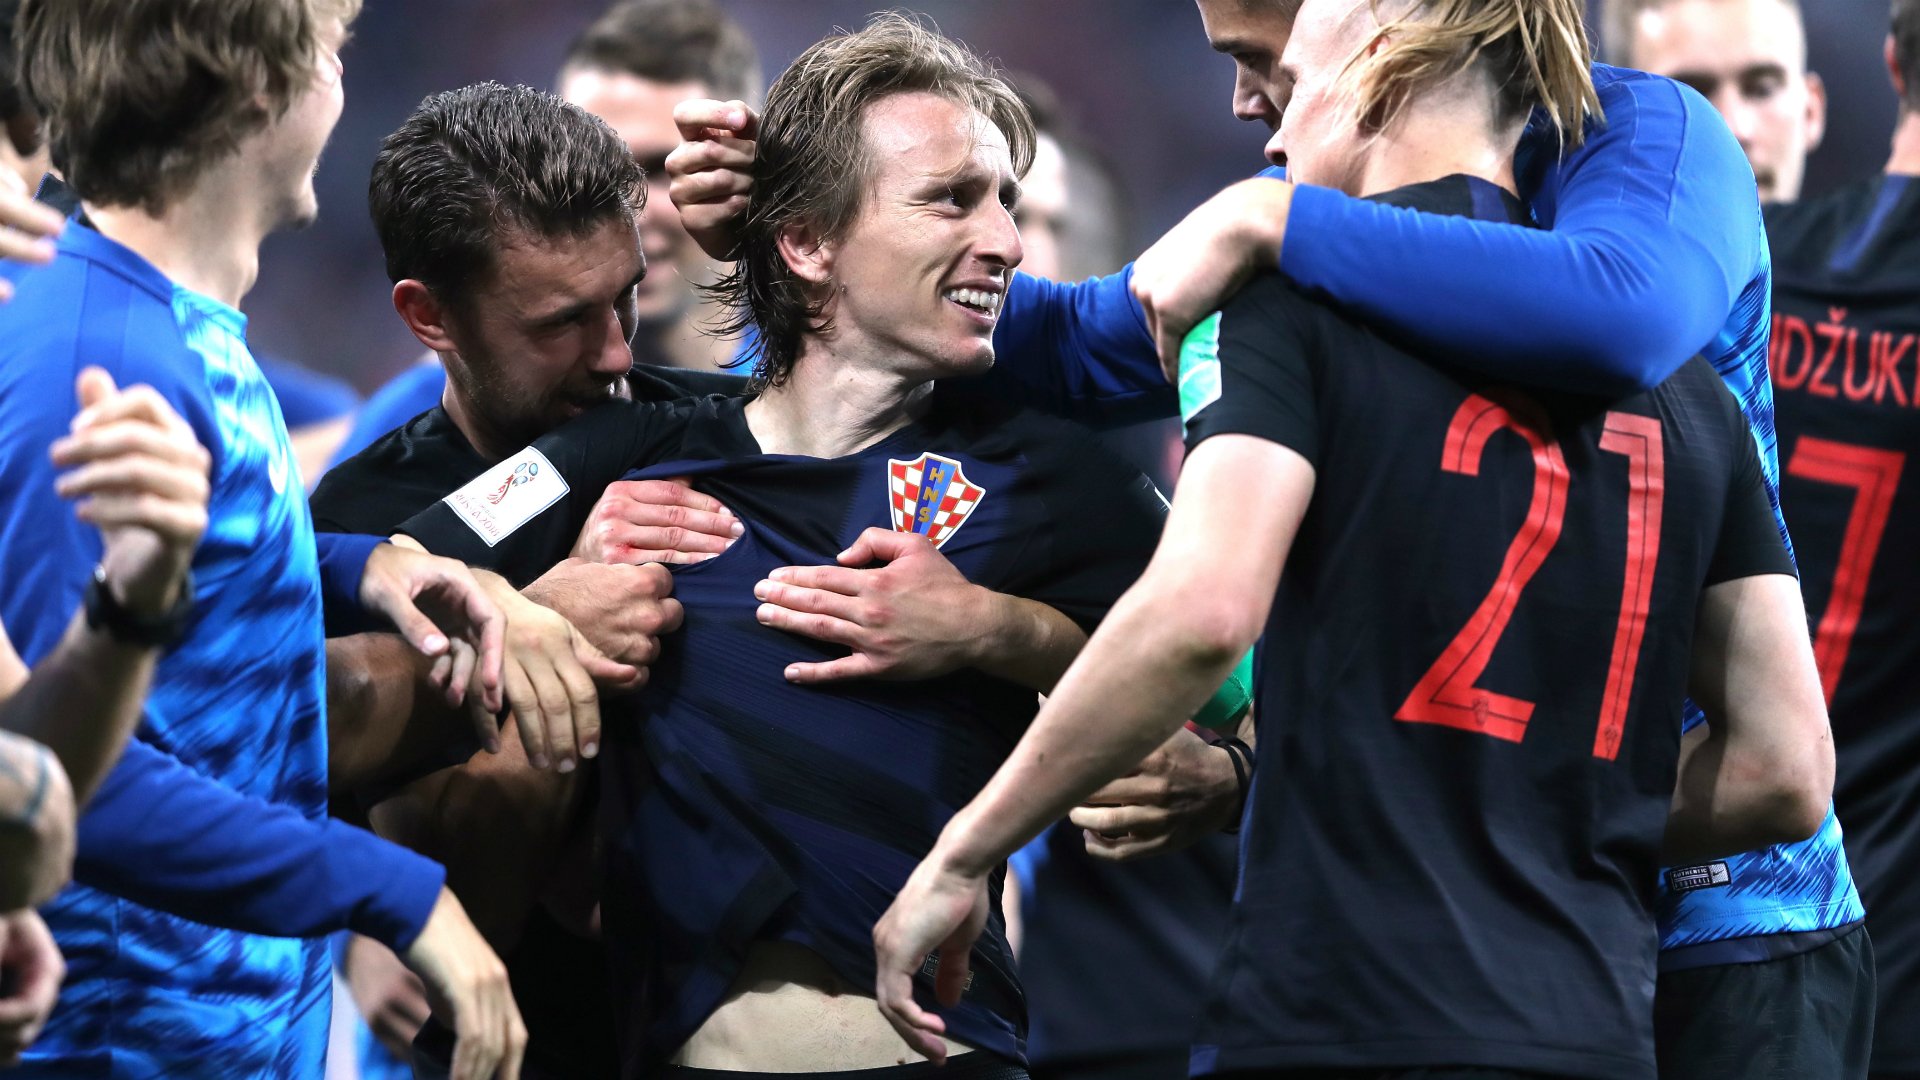 Croatia ends Russia's World Cup dream